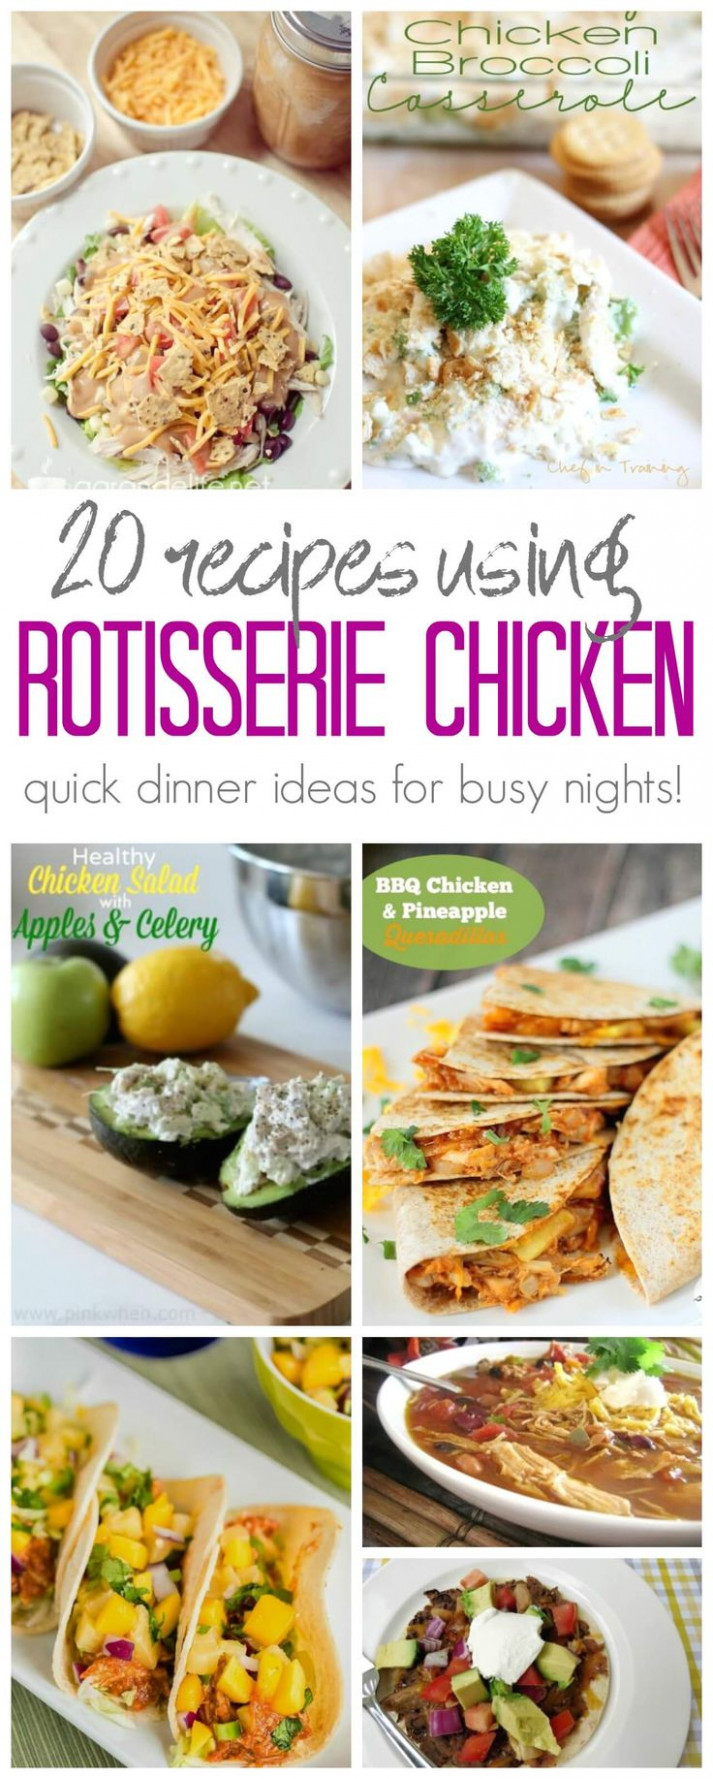 what to do with leftover rotisserie chicken recipes - healthy recipes rotisserie chicken